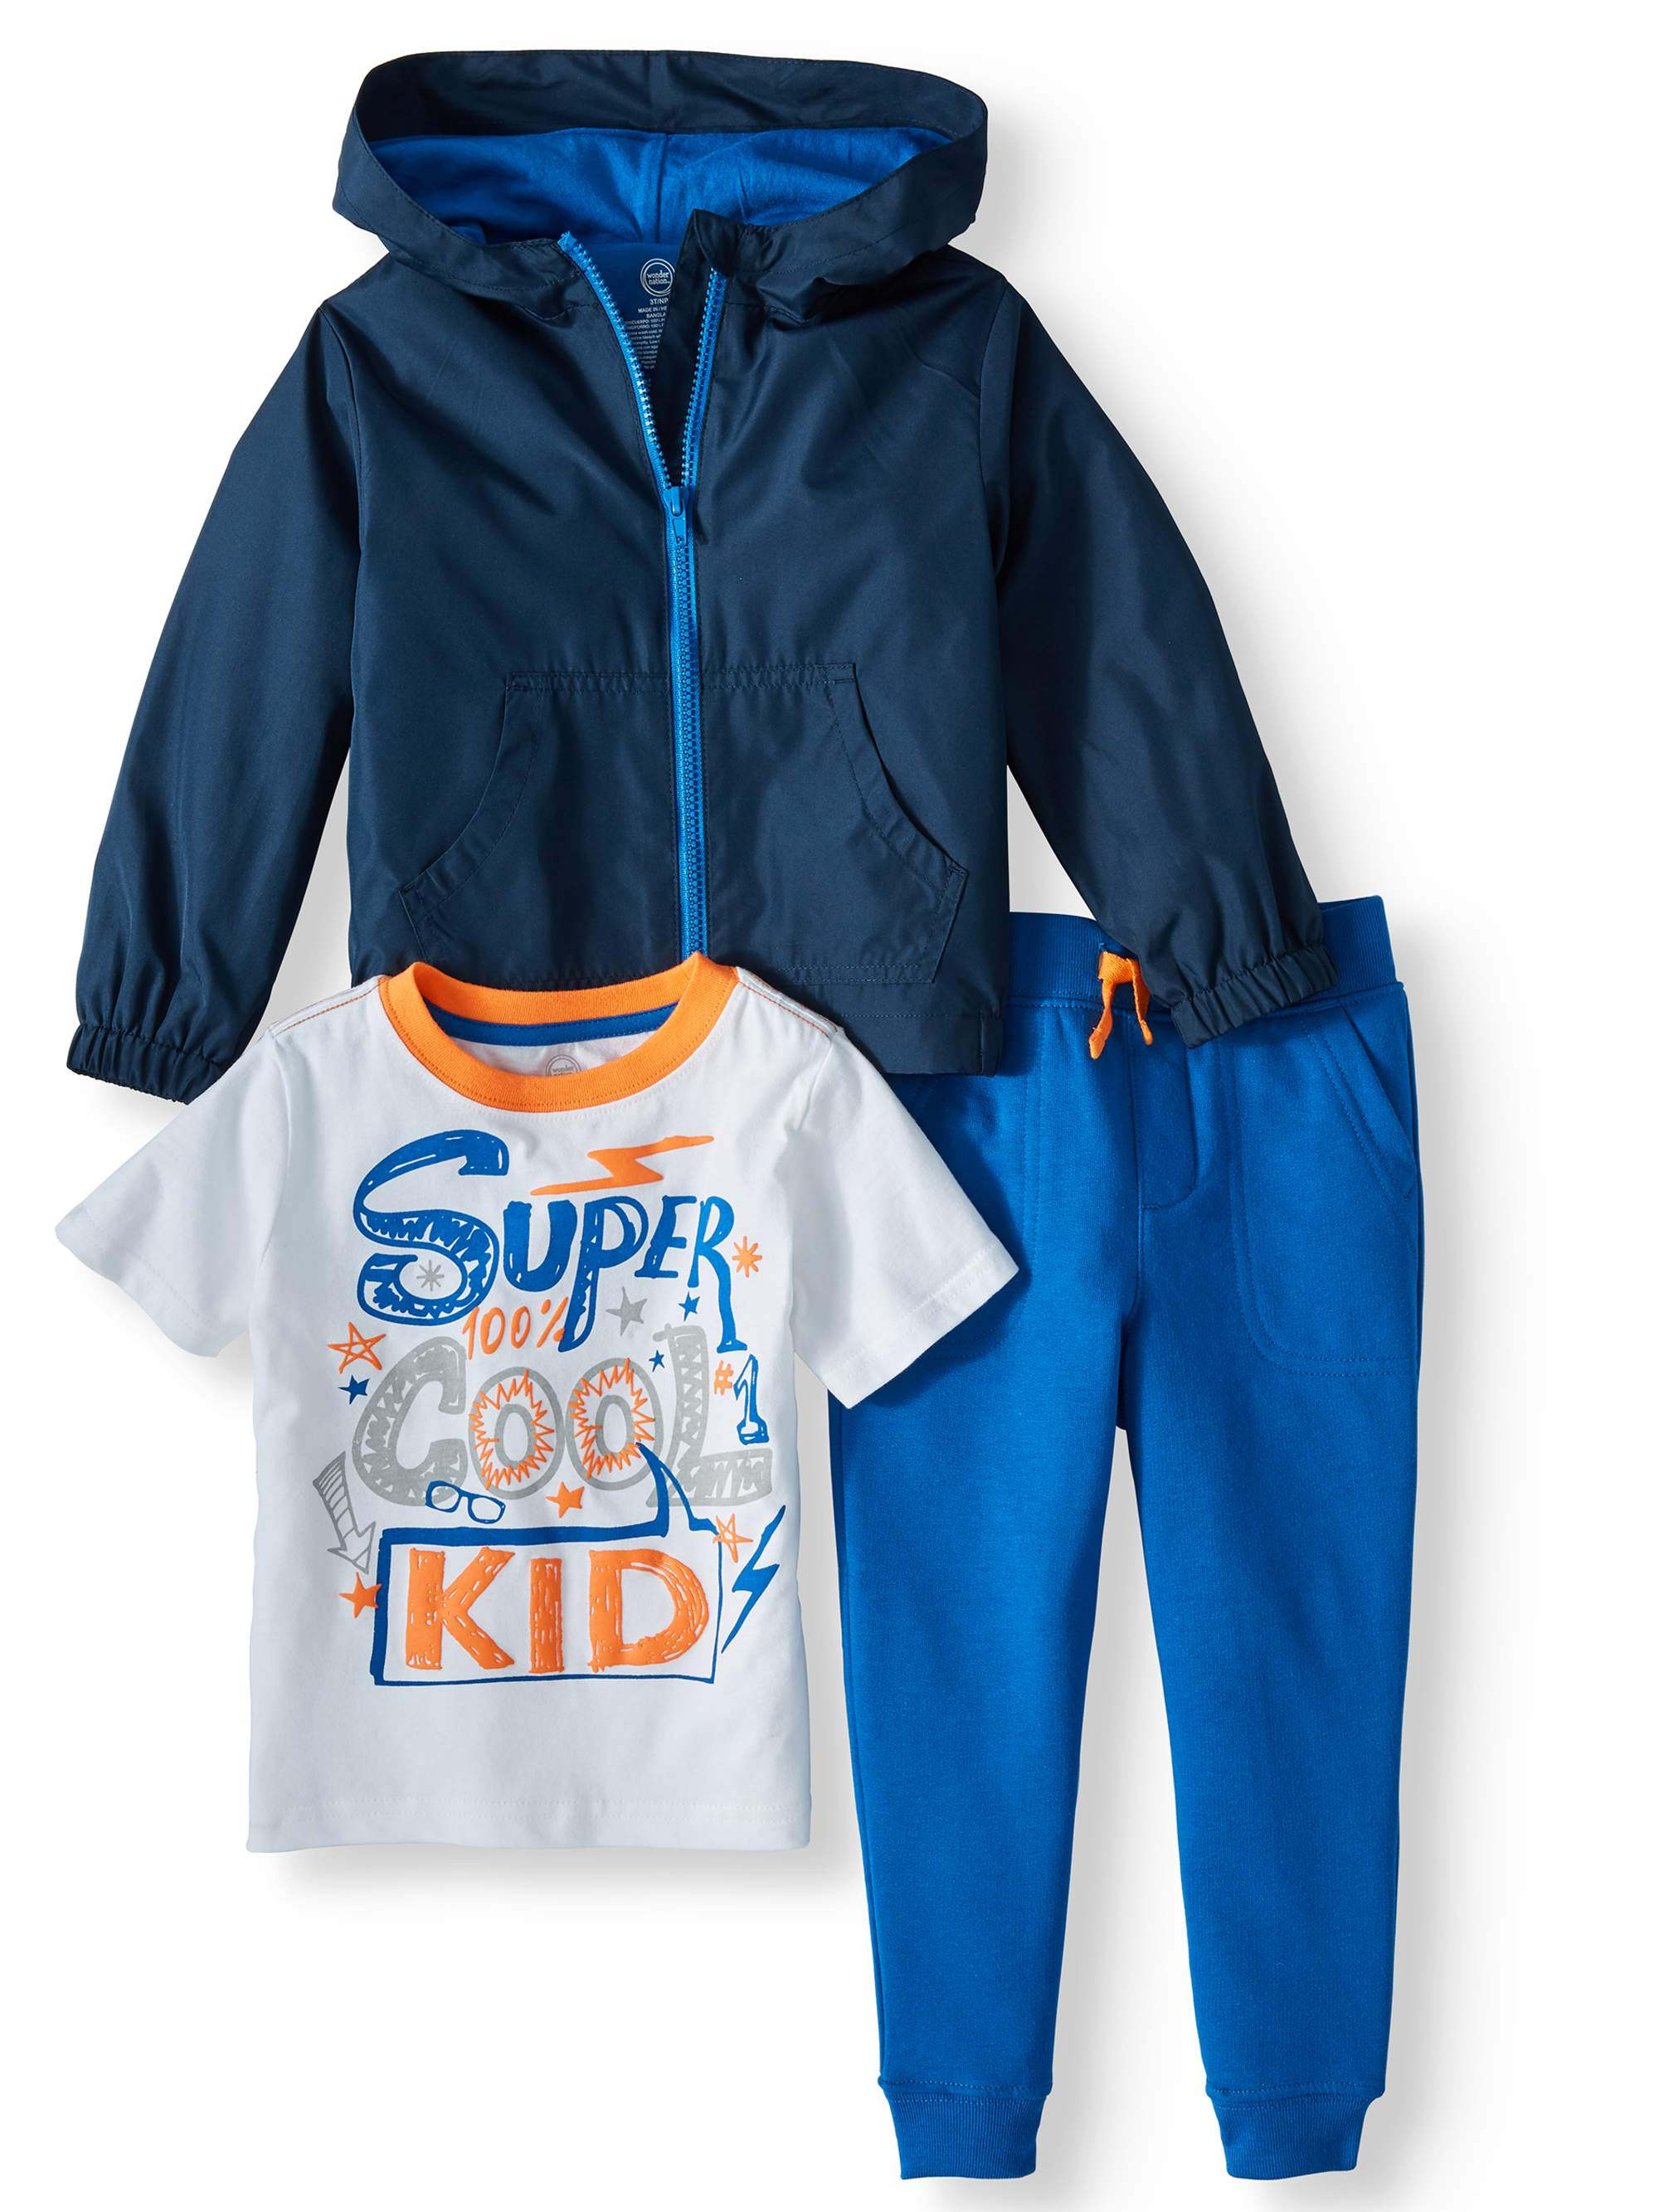 T-Shirt, Jogger Pants, & Zip Up Lightweight Hooded Raincoat, 3pc Outfit Set (Toddler Boys)